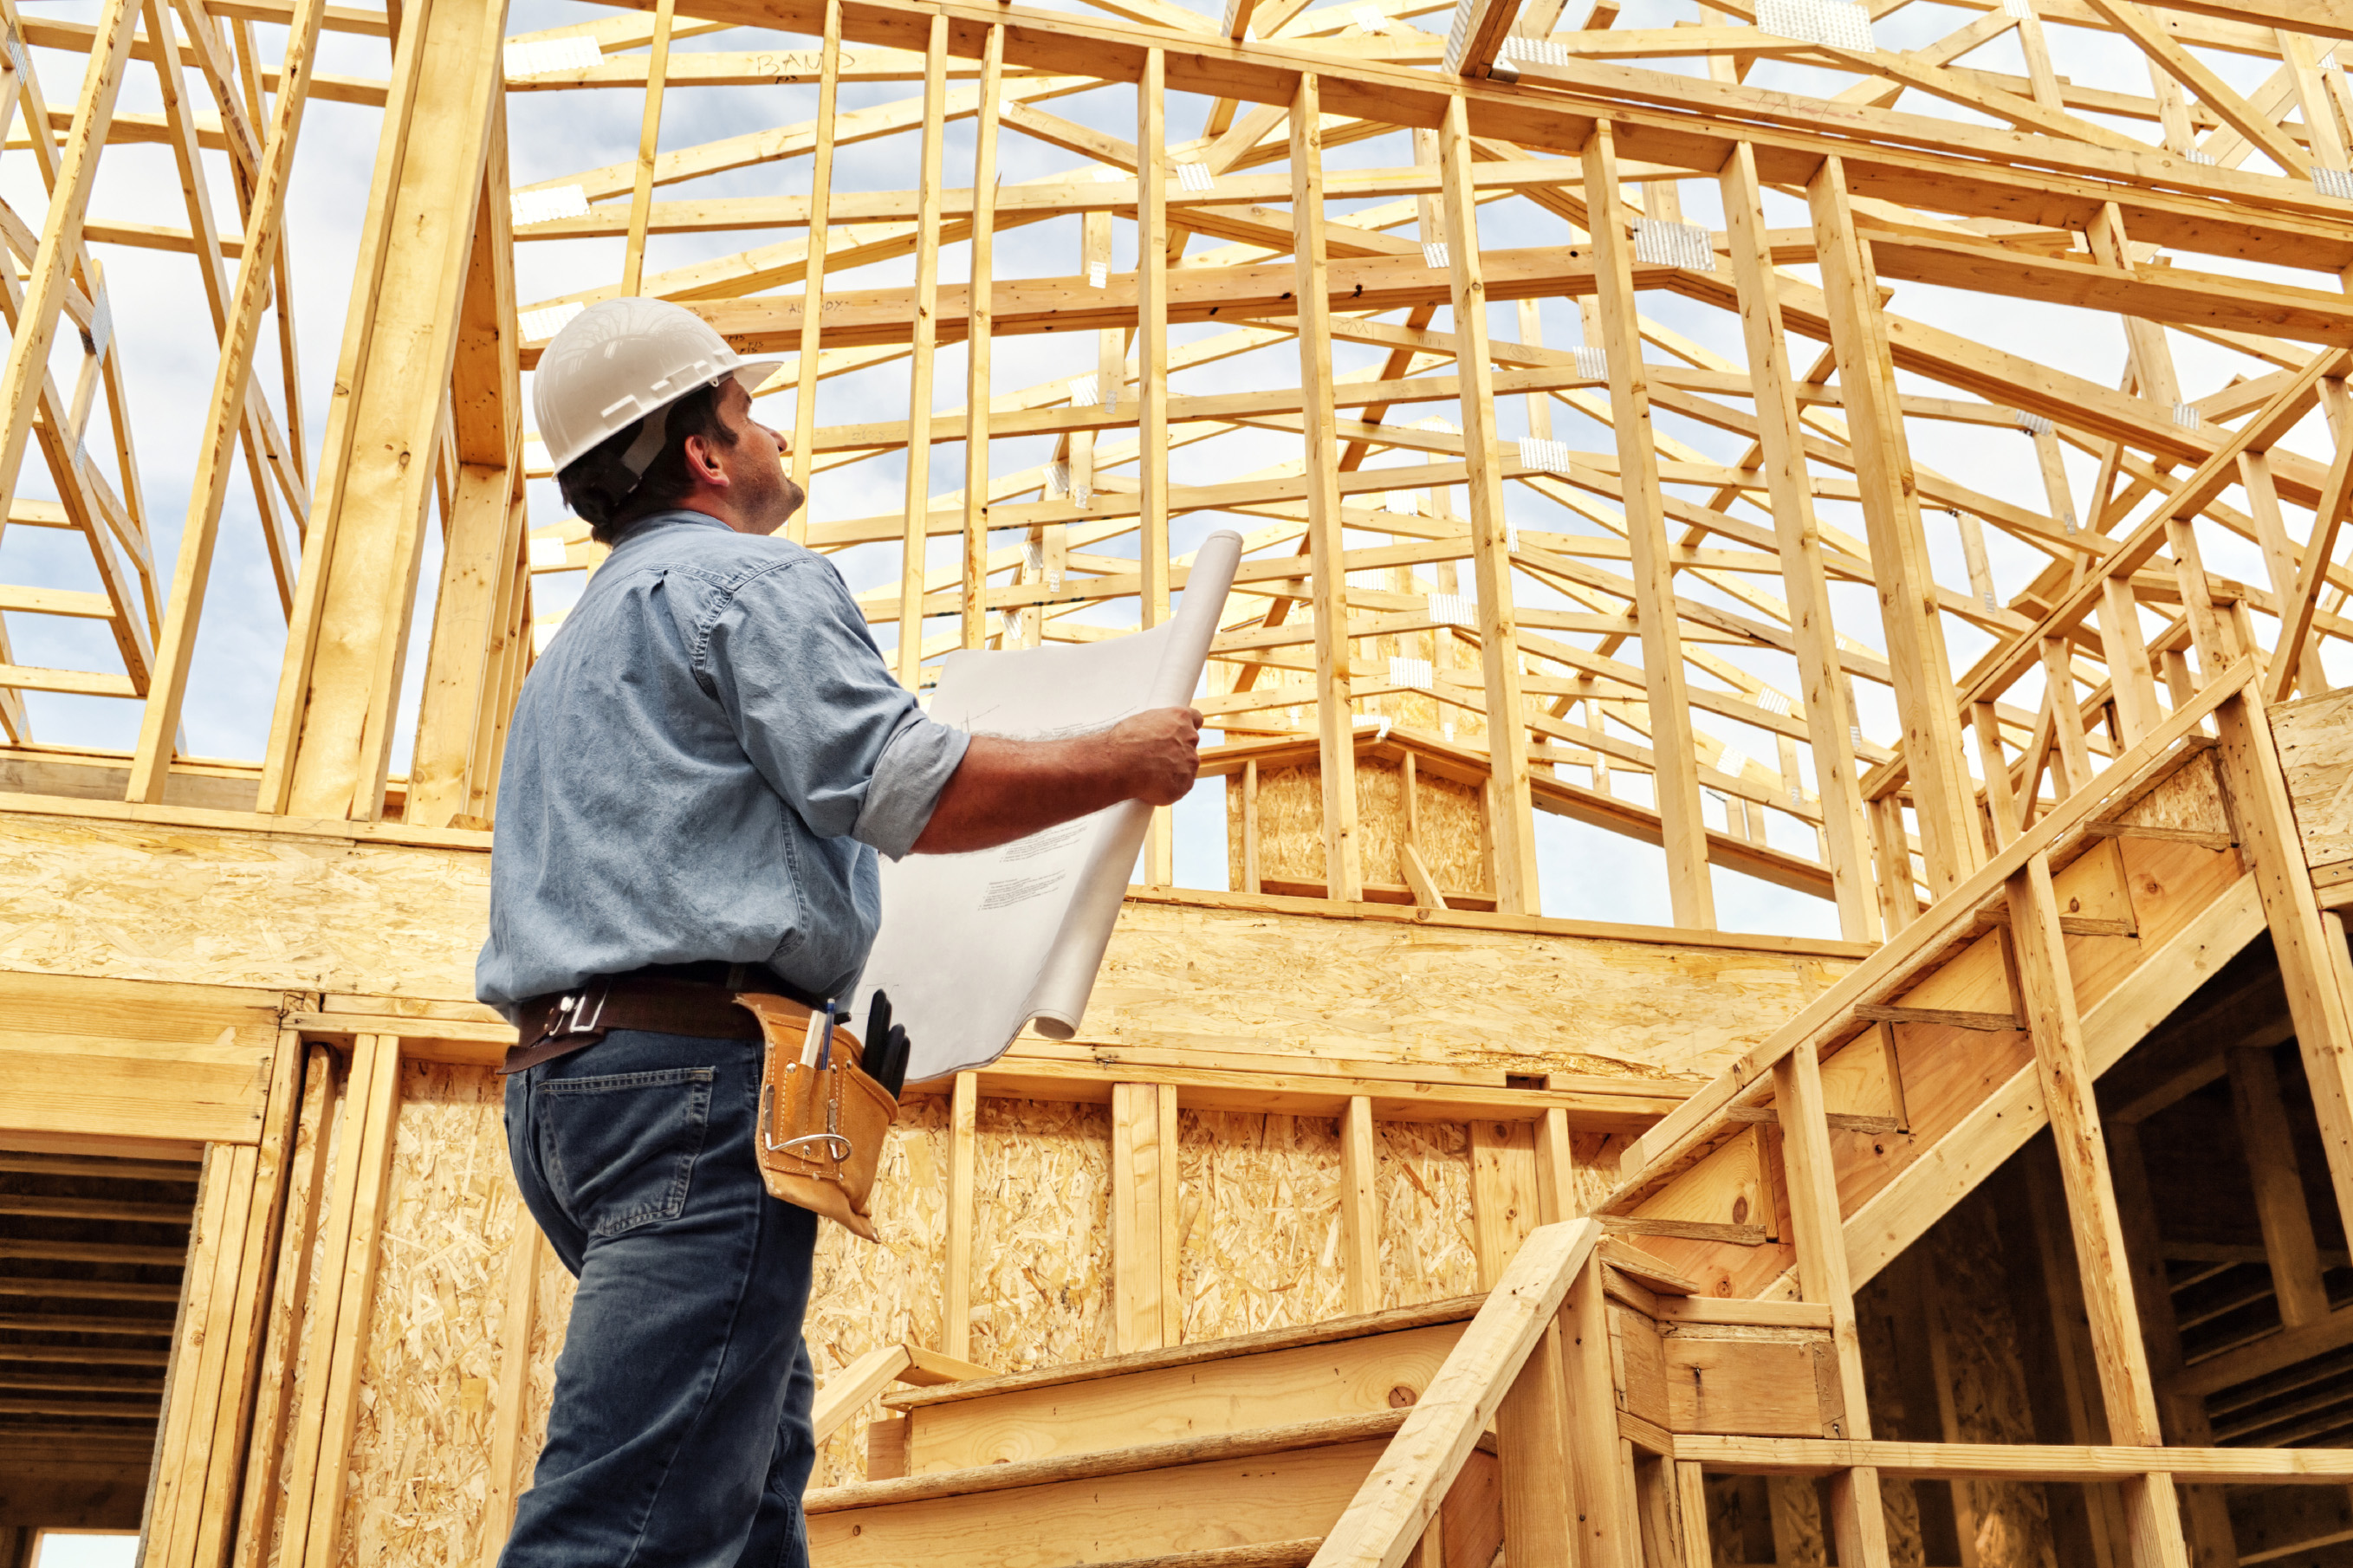 Wood Roof Trusses: Advanced Technology in Building Design